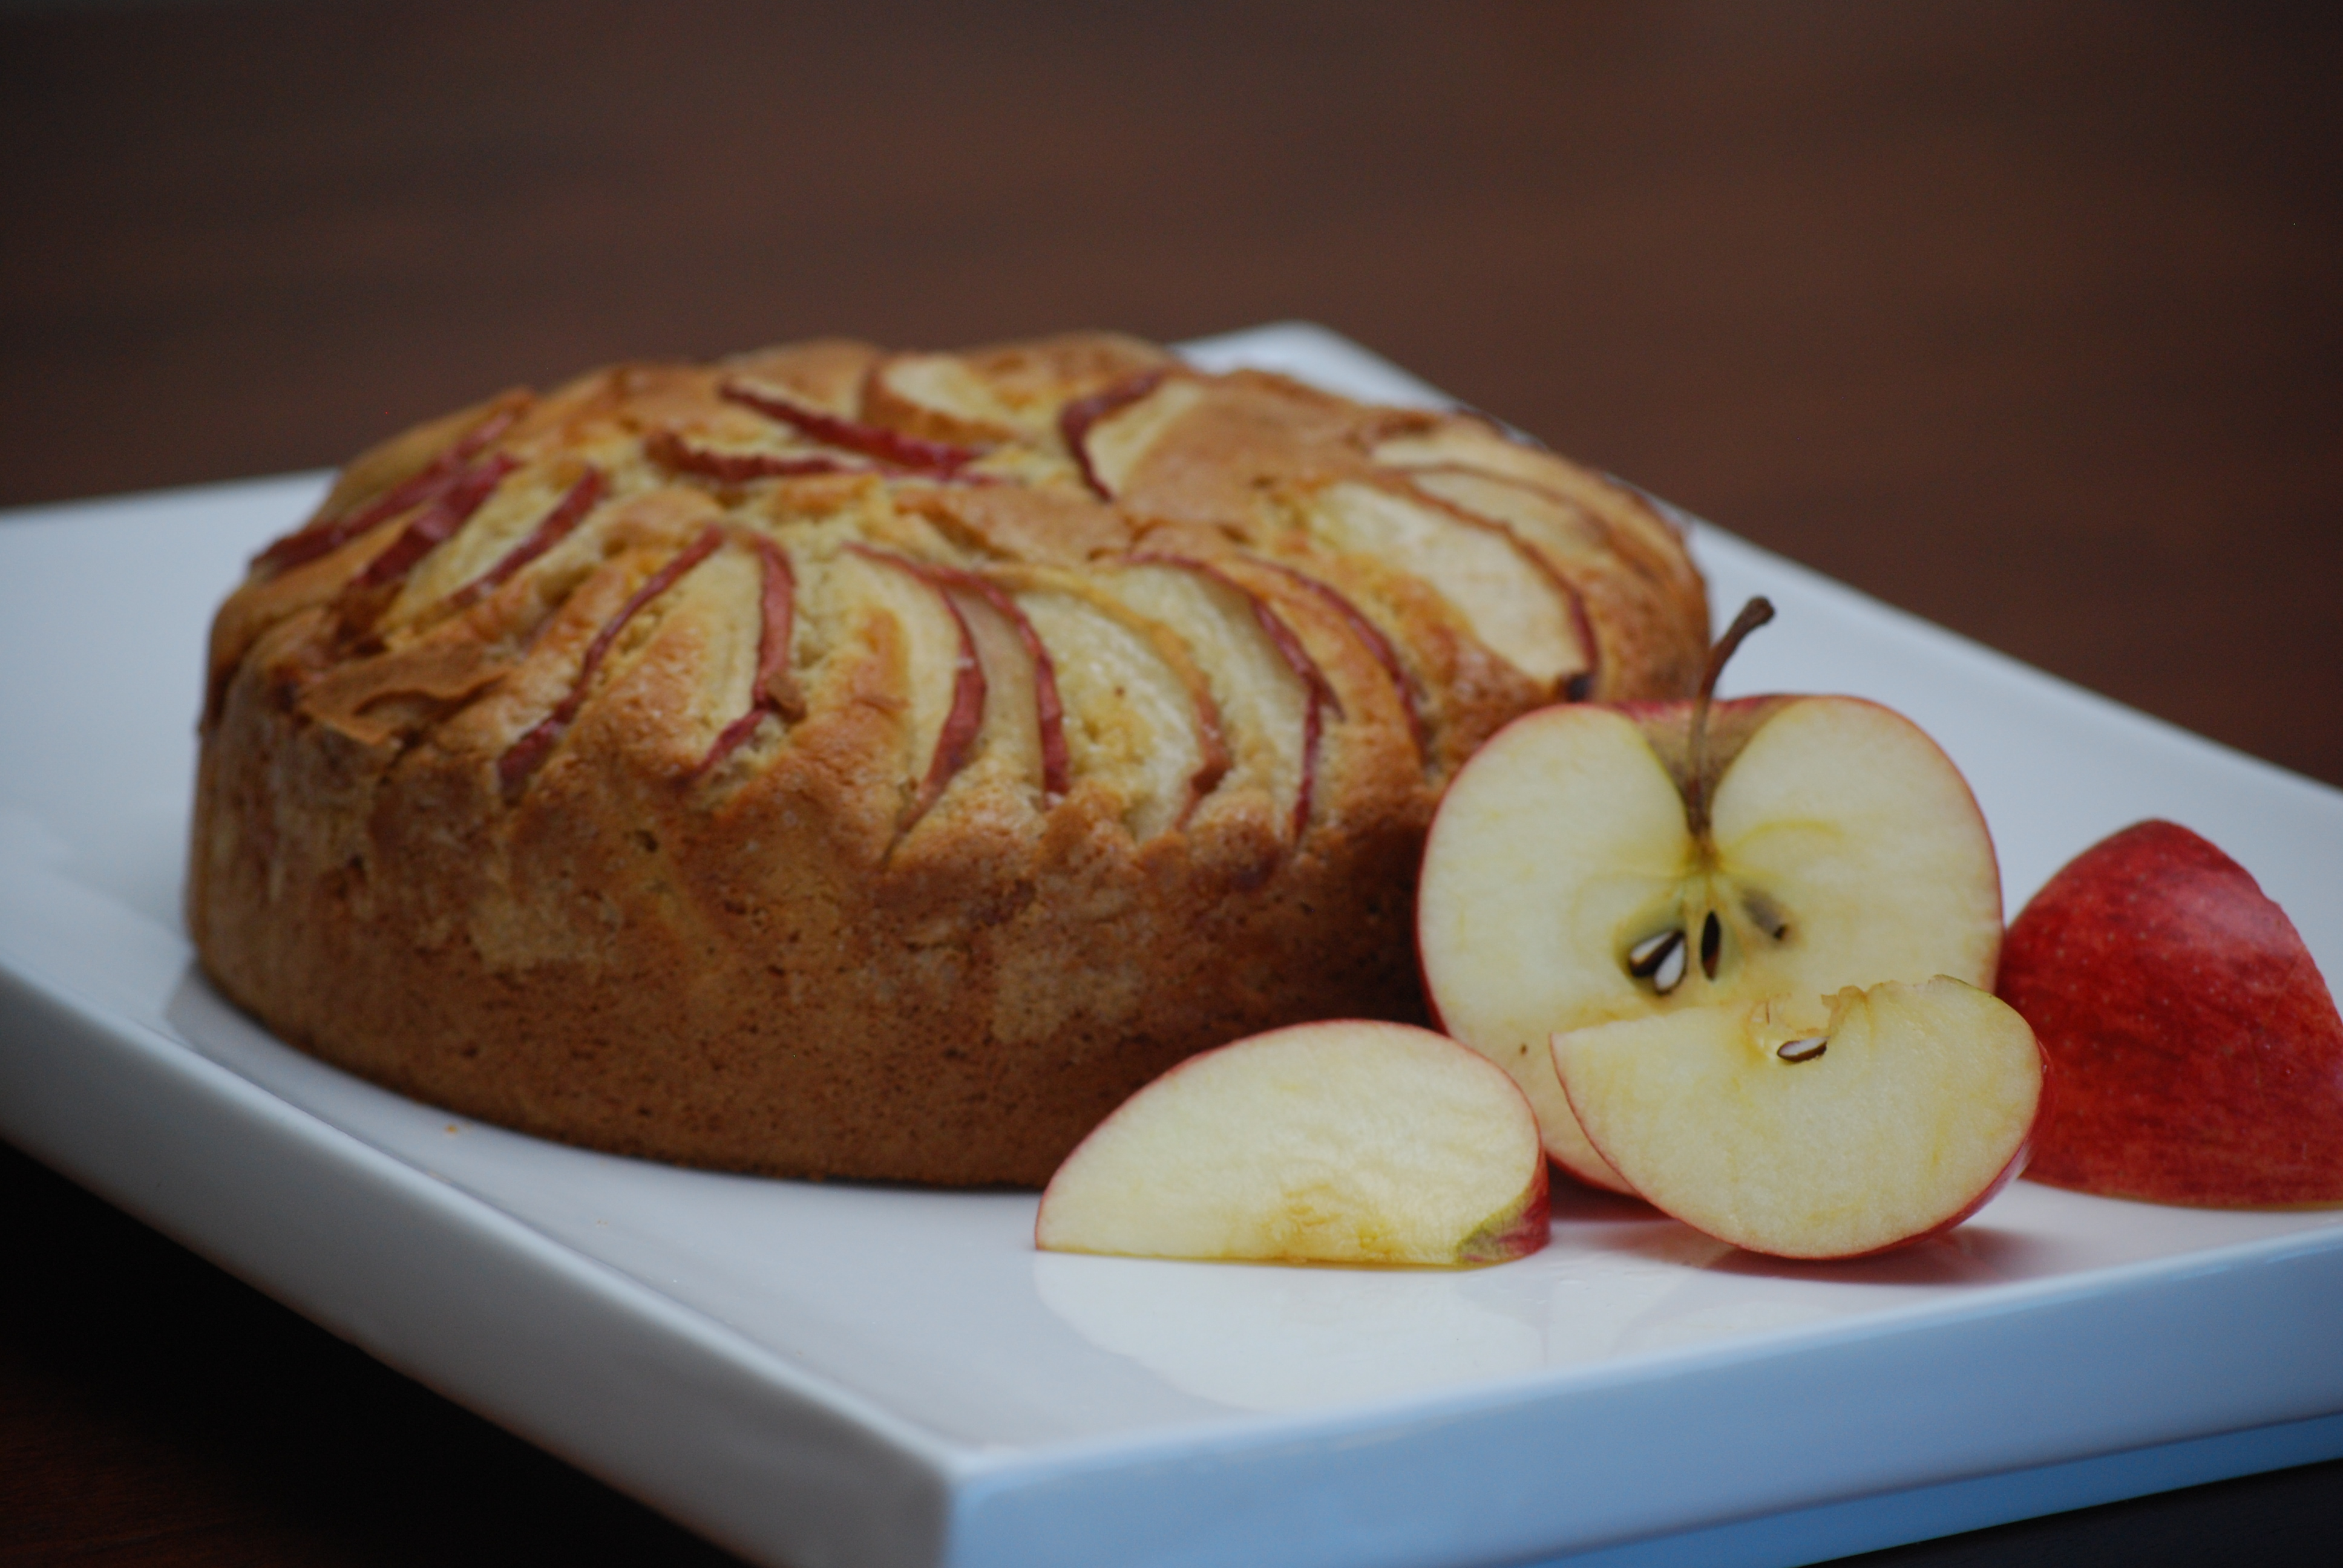 Cake Recipes Donna Hay: Apple & Blueberry Cake – Donna Hay